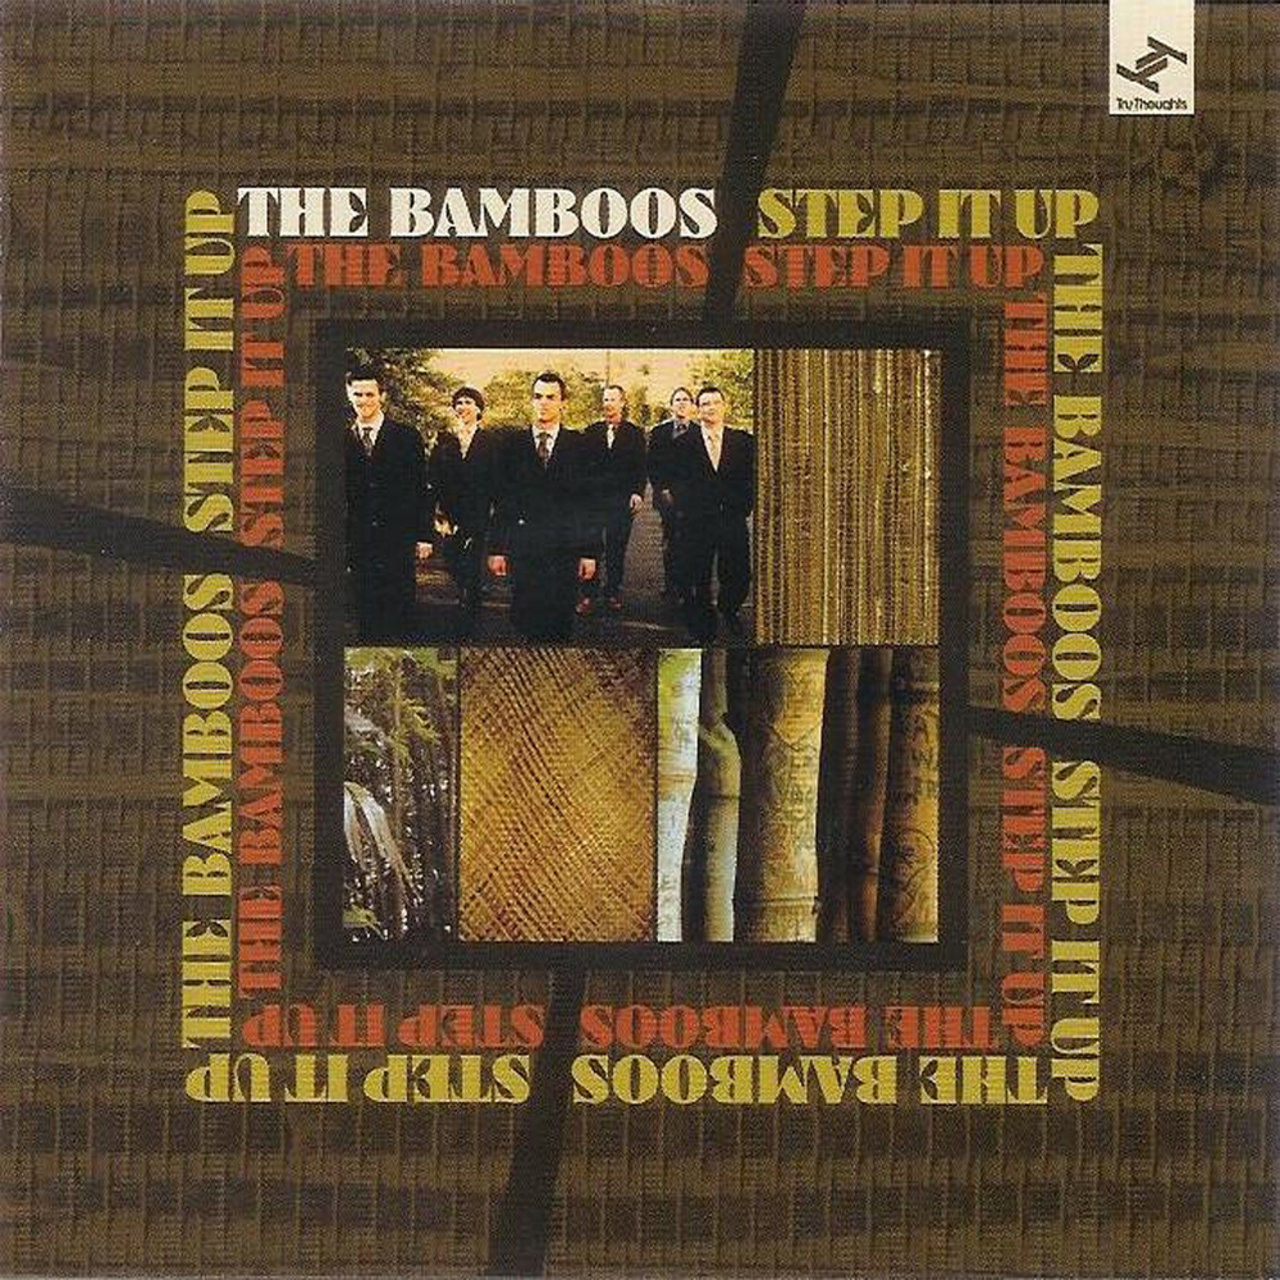 24. The Bamboos – 'Step It Up'   CD/LP (Tru Thoughts/Ubiquity) UK/USA 2006  1. 'Step It Up' feat. Alice Russell 2. 'Tighten Up' (Album Version) 3. 'In The Bamboo Grove' 4. 'Golden Rough' 5. 'Blackfoot' 6. 'Transcend Me' feat.Alice Russell; 7. 'Tobago Strut' 8. 'Another day In The Life Of Mr Jones' 9. 'Eel Oil' 10. 'Crooked Cop 11. Voodoo Doll' (Album Version)